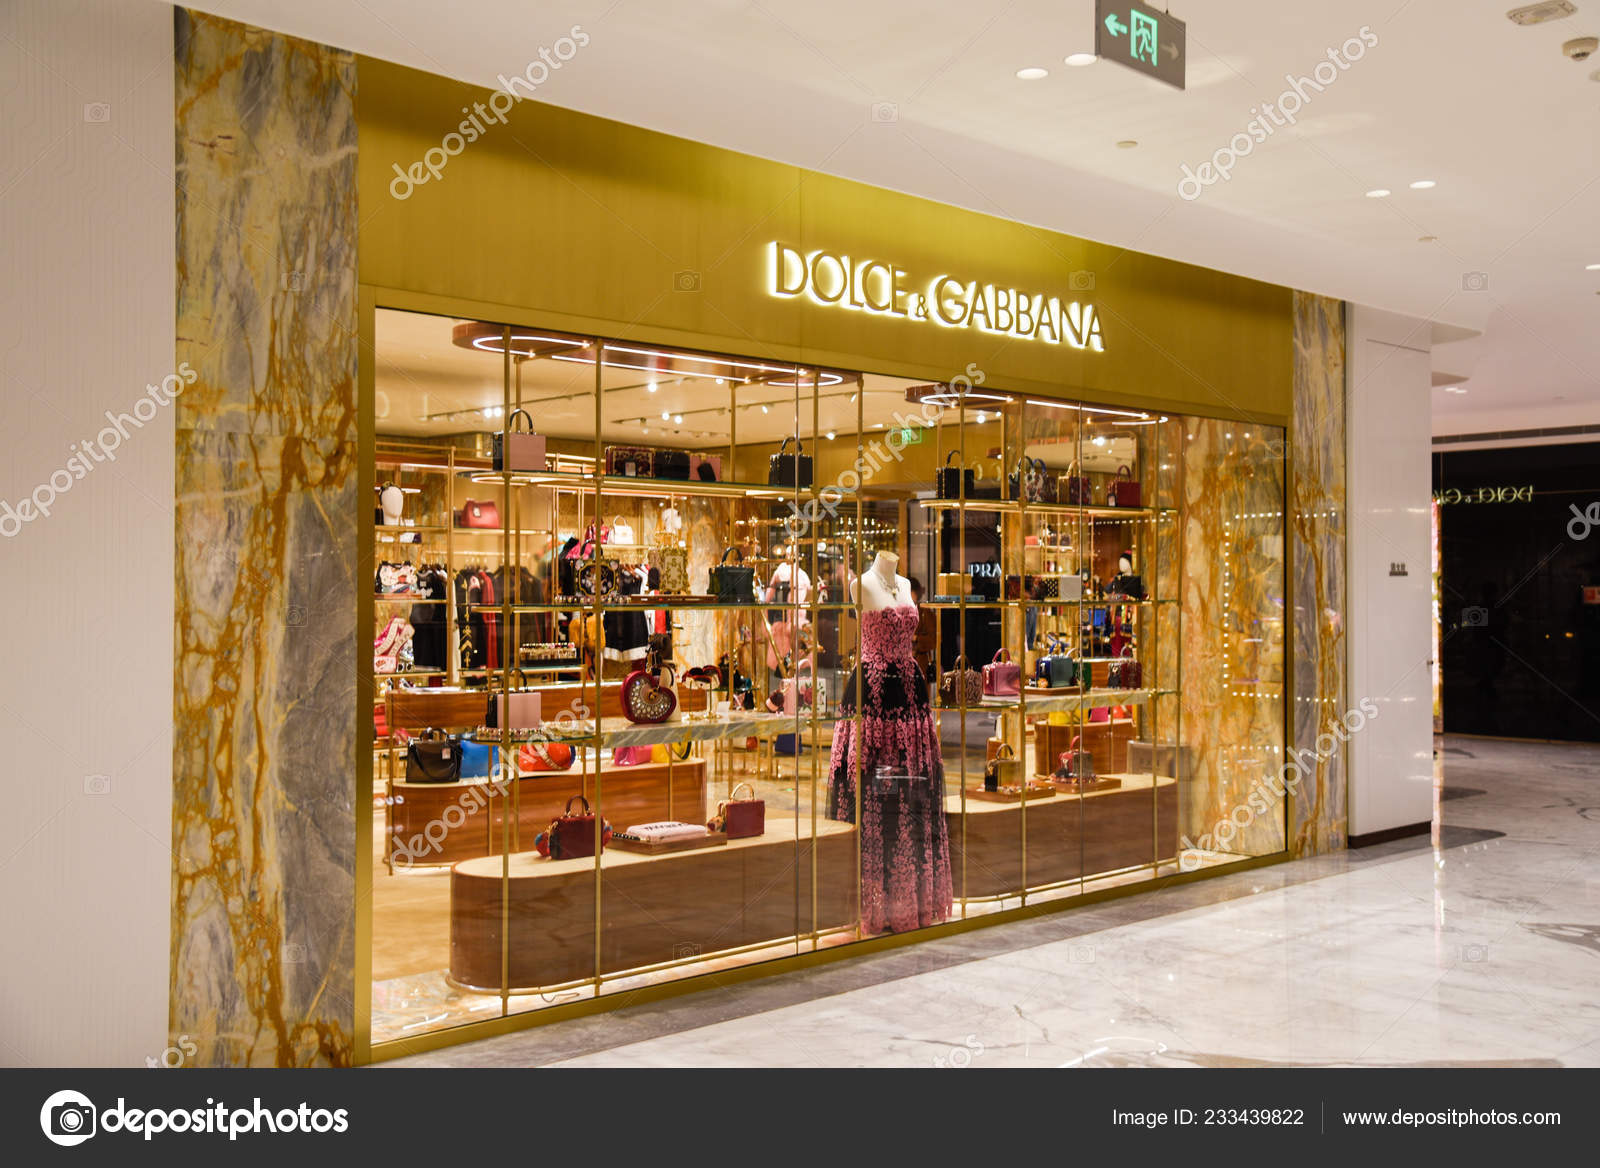 finest selection 57b68 576d1 View Boutique Store Dolce Gabbana Shopping Mall Beijing ...